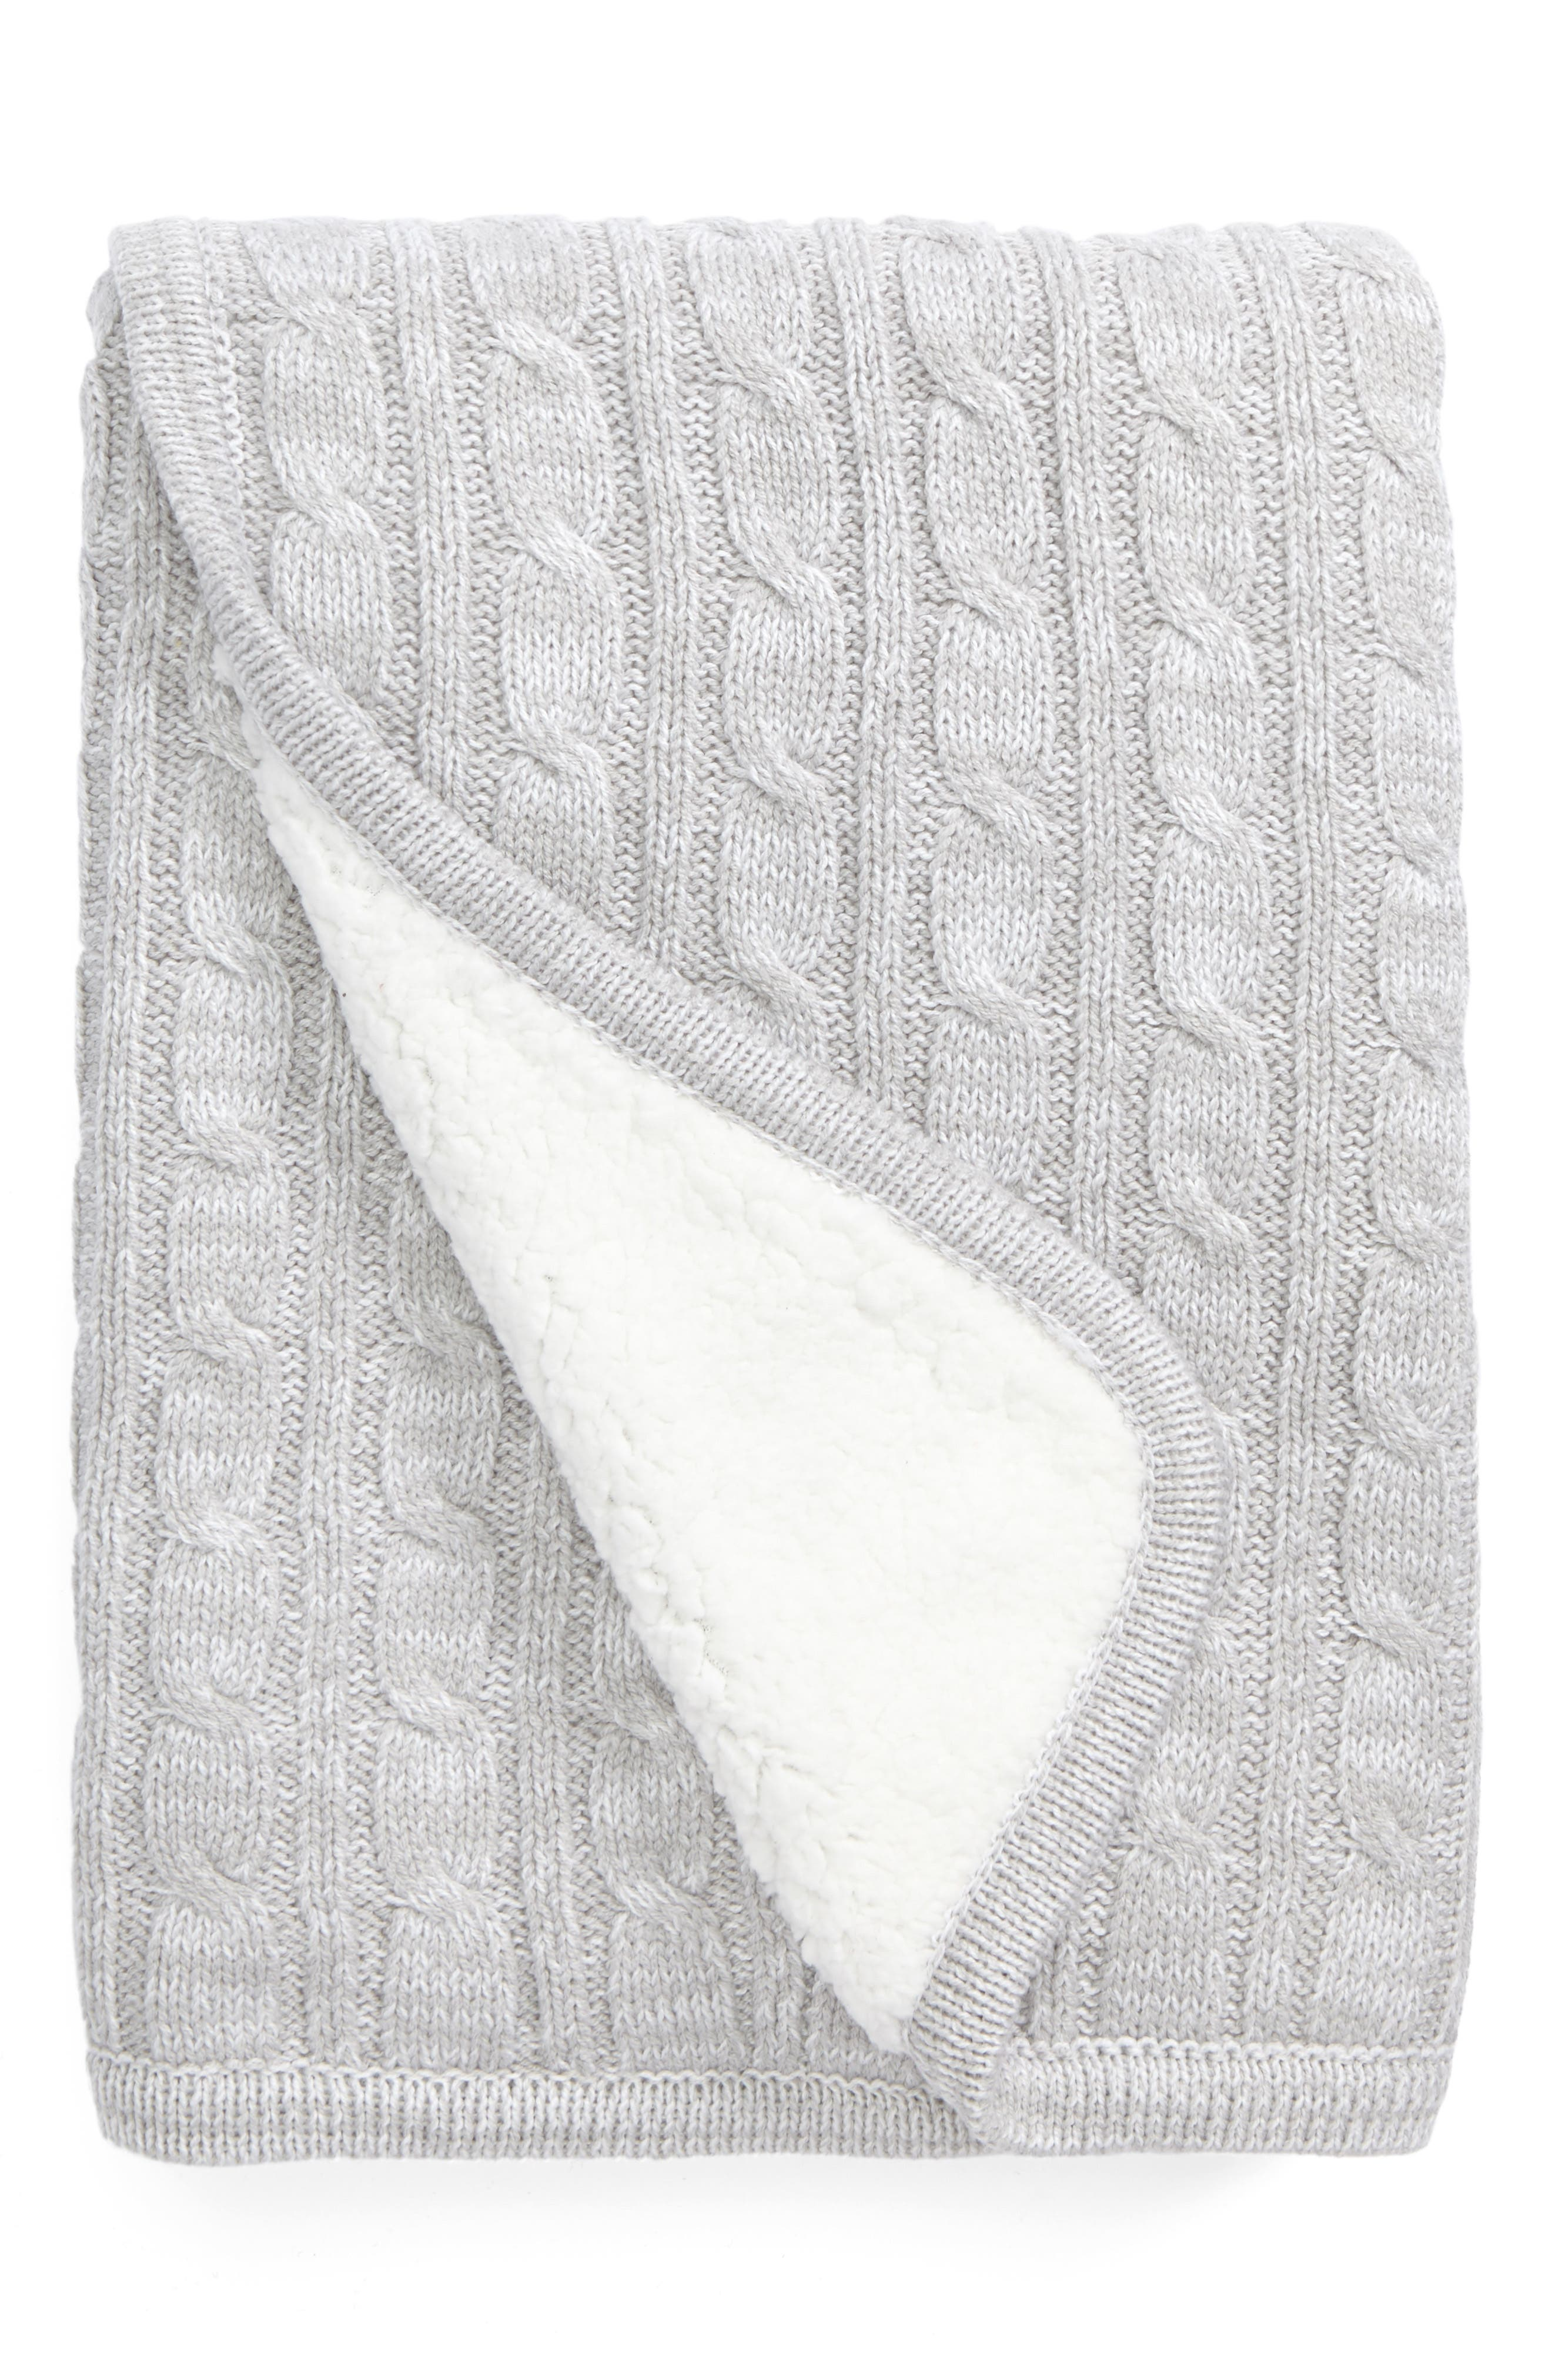 Main Image - Nordstrom Baby Cable Knit Blanket